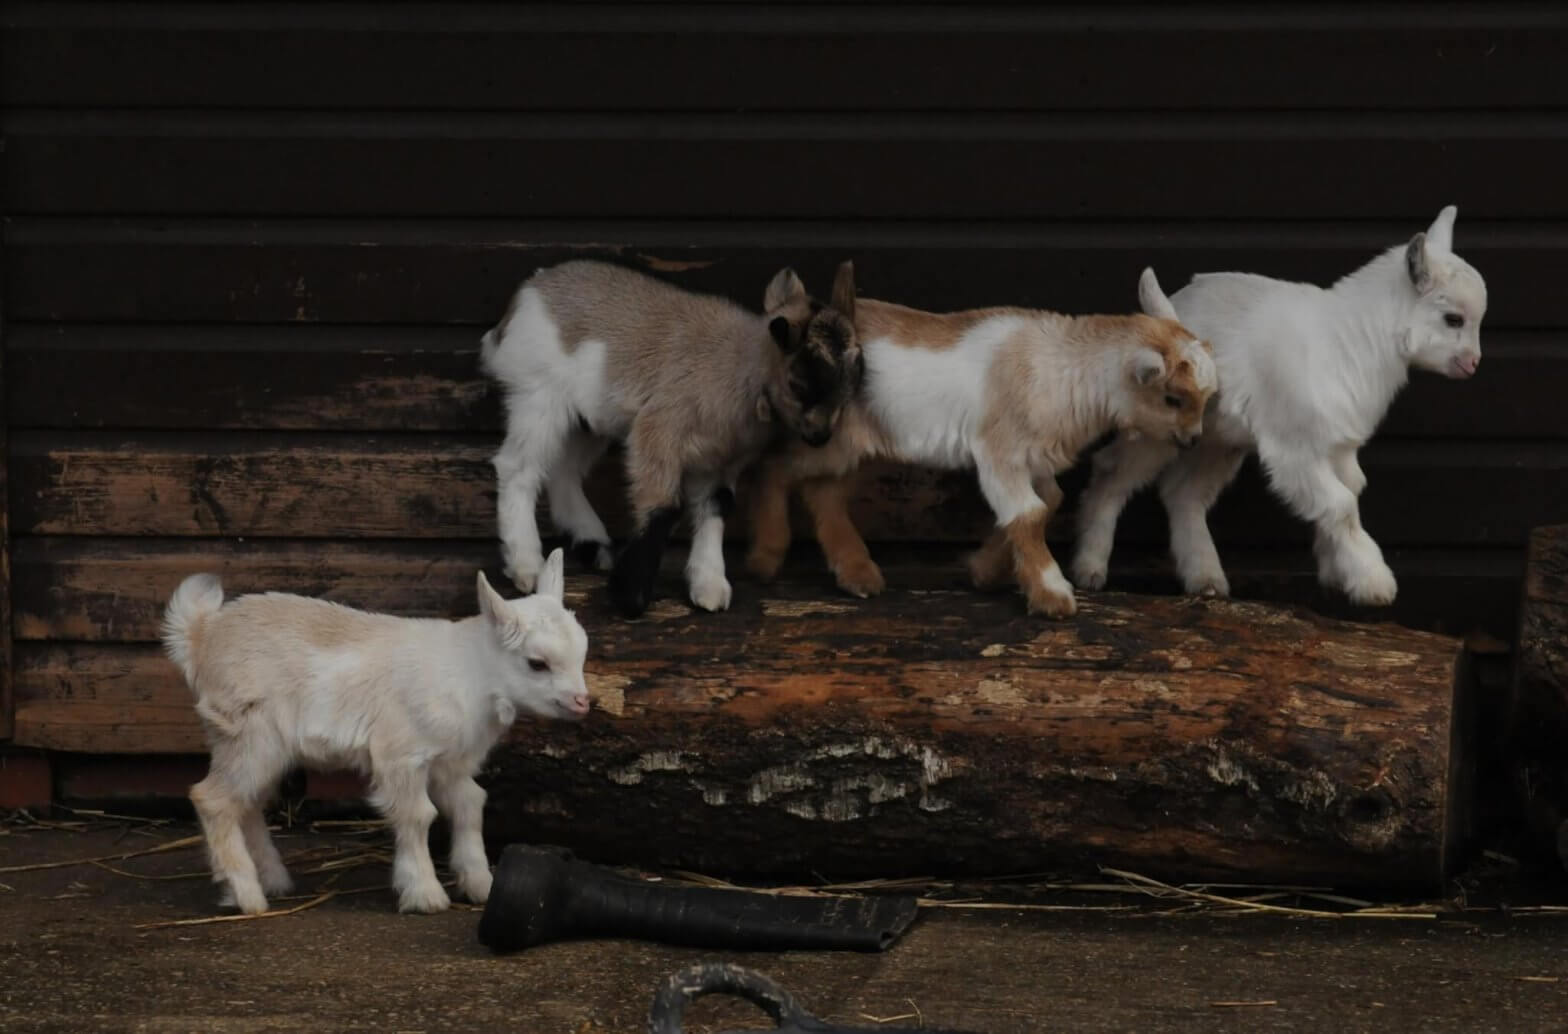 A new brood of African pygmy goats at the Children's Zoo, Walton Hall and Gardens 2020. Taken by keen amateur photographer Darren Moston - Easter